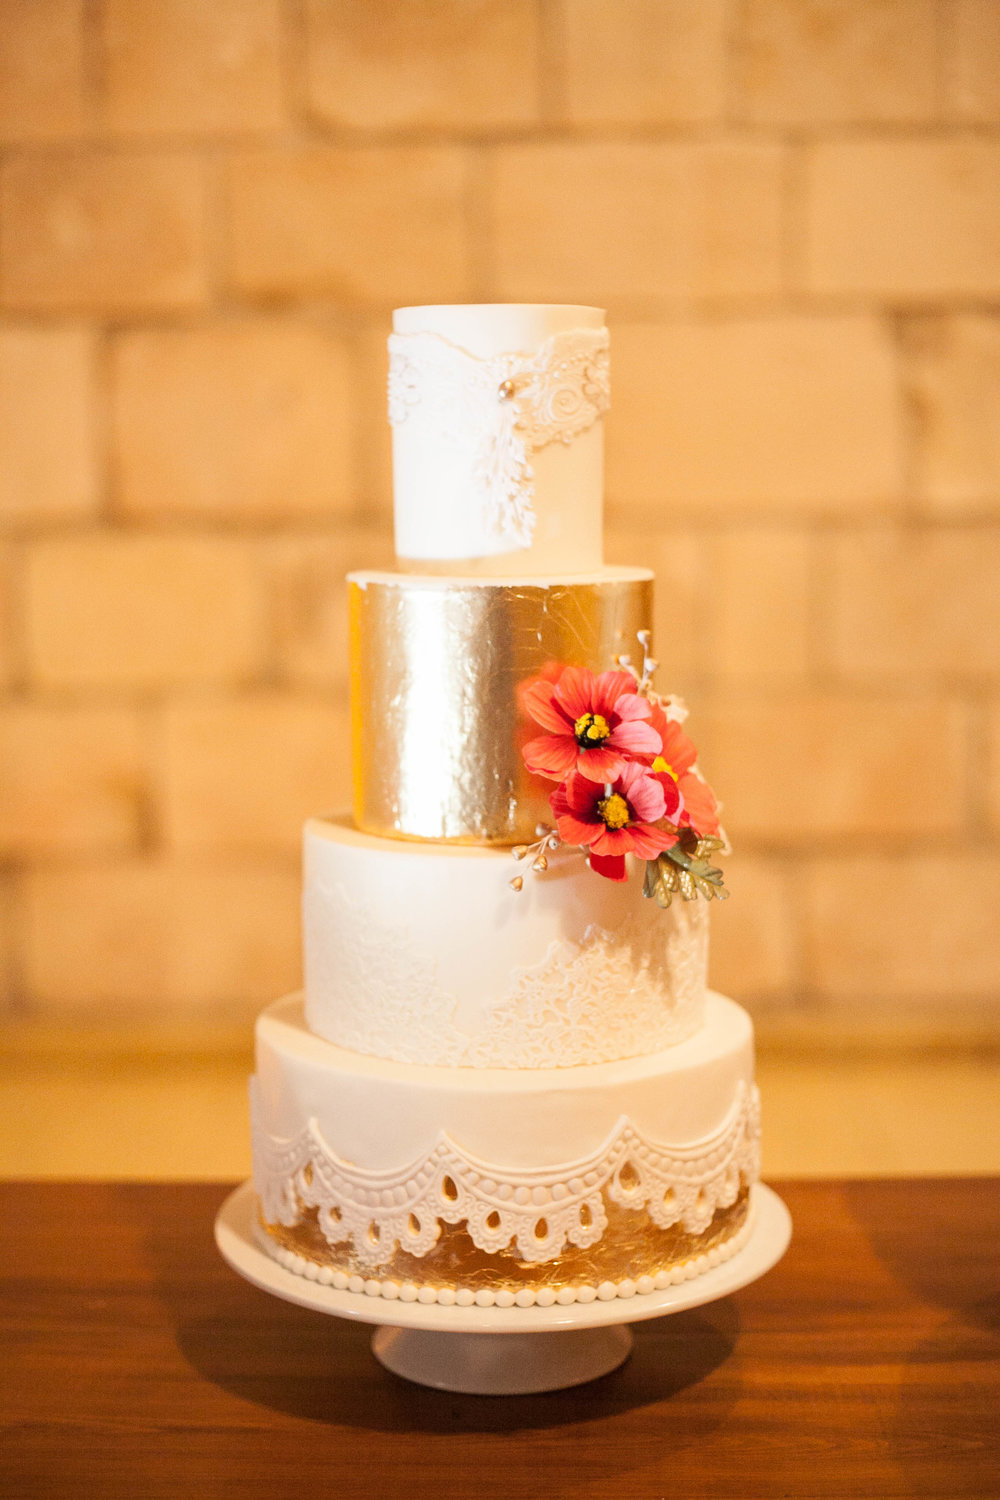 Cake by The Vagabond Baker. Image by St Clerv Photo